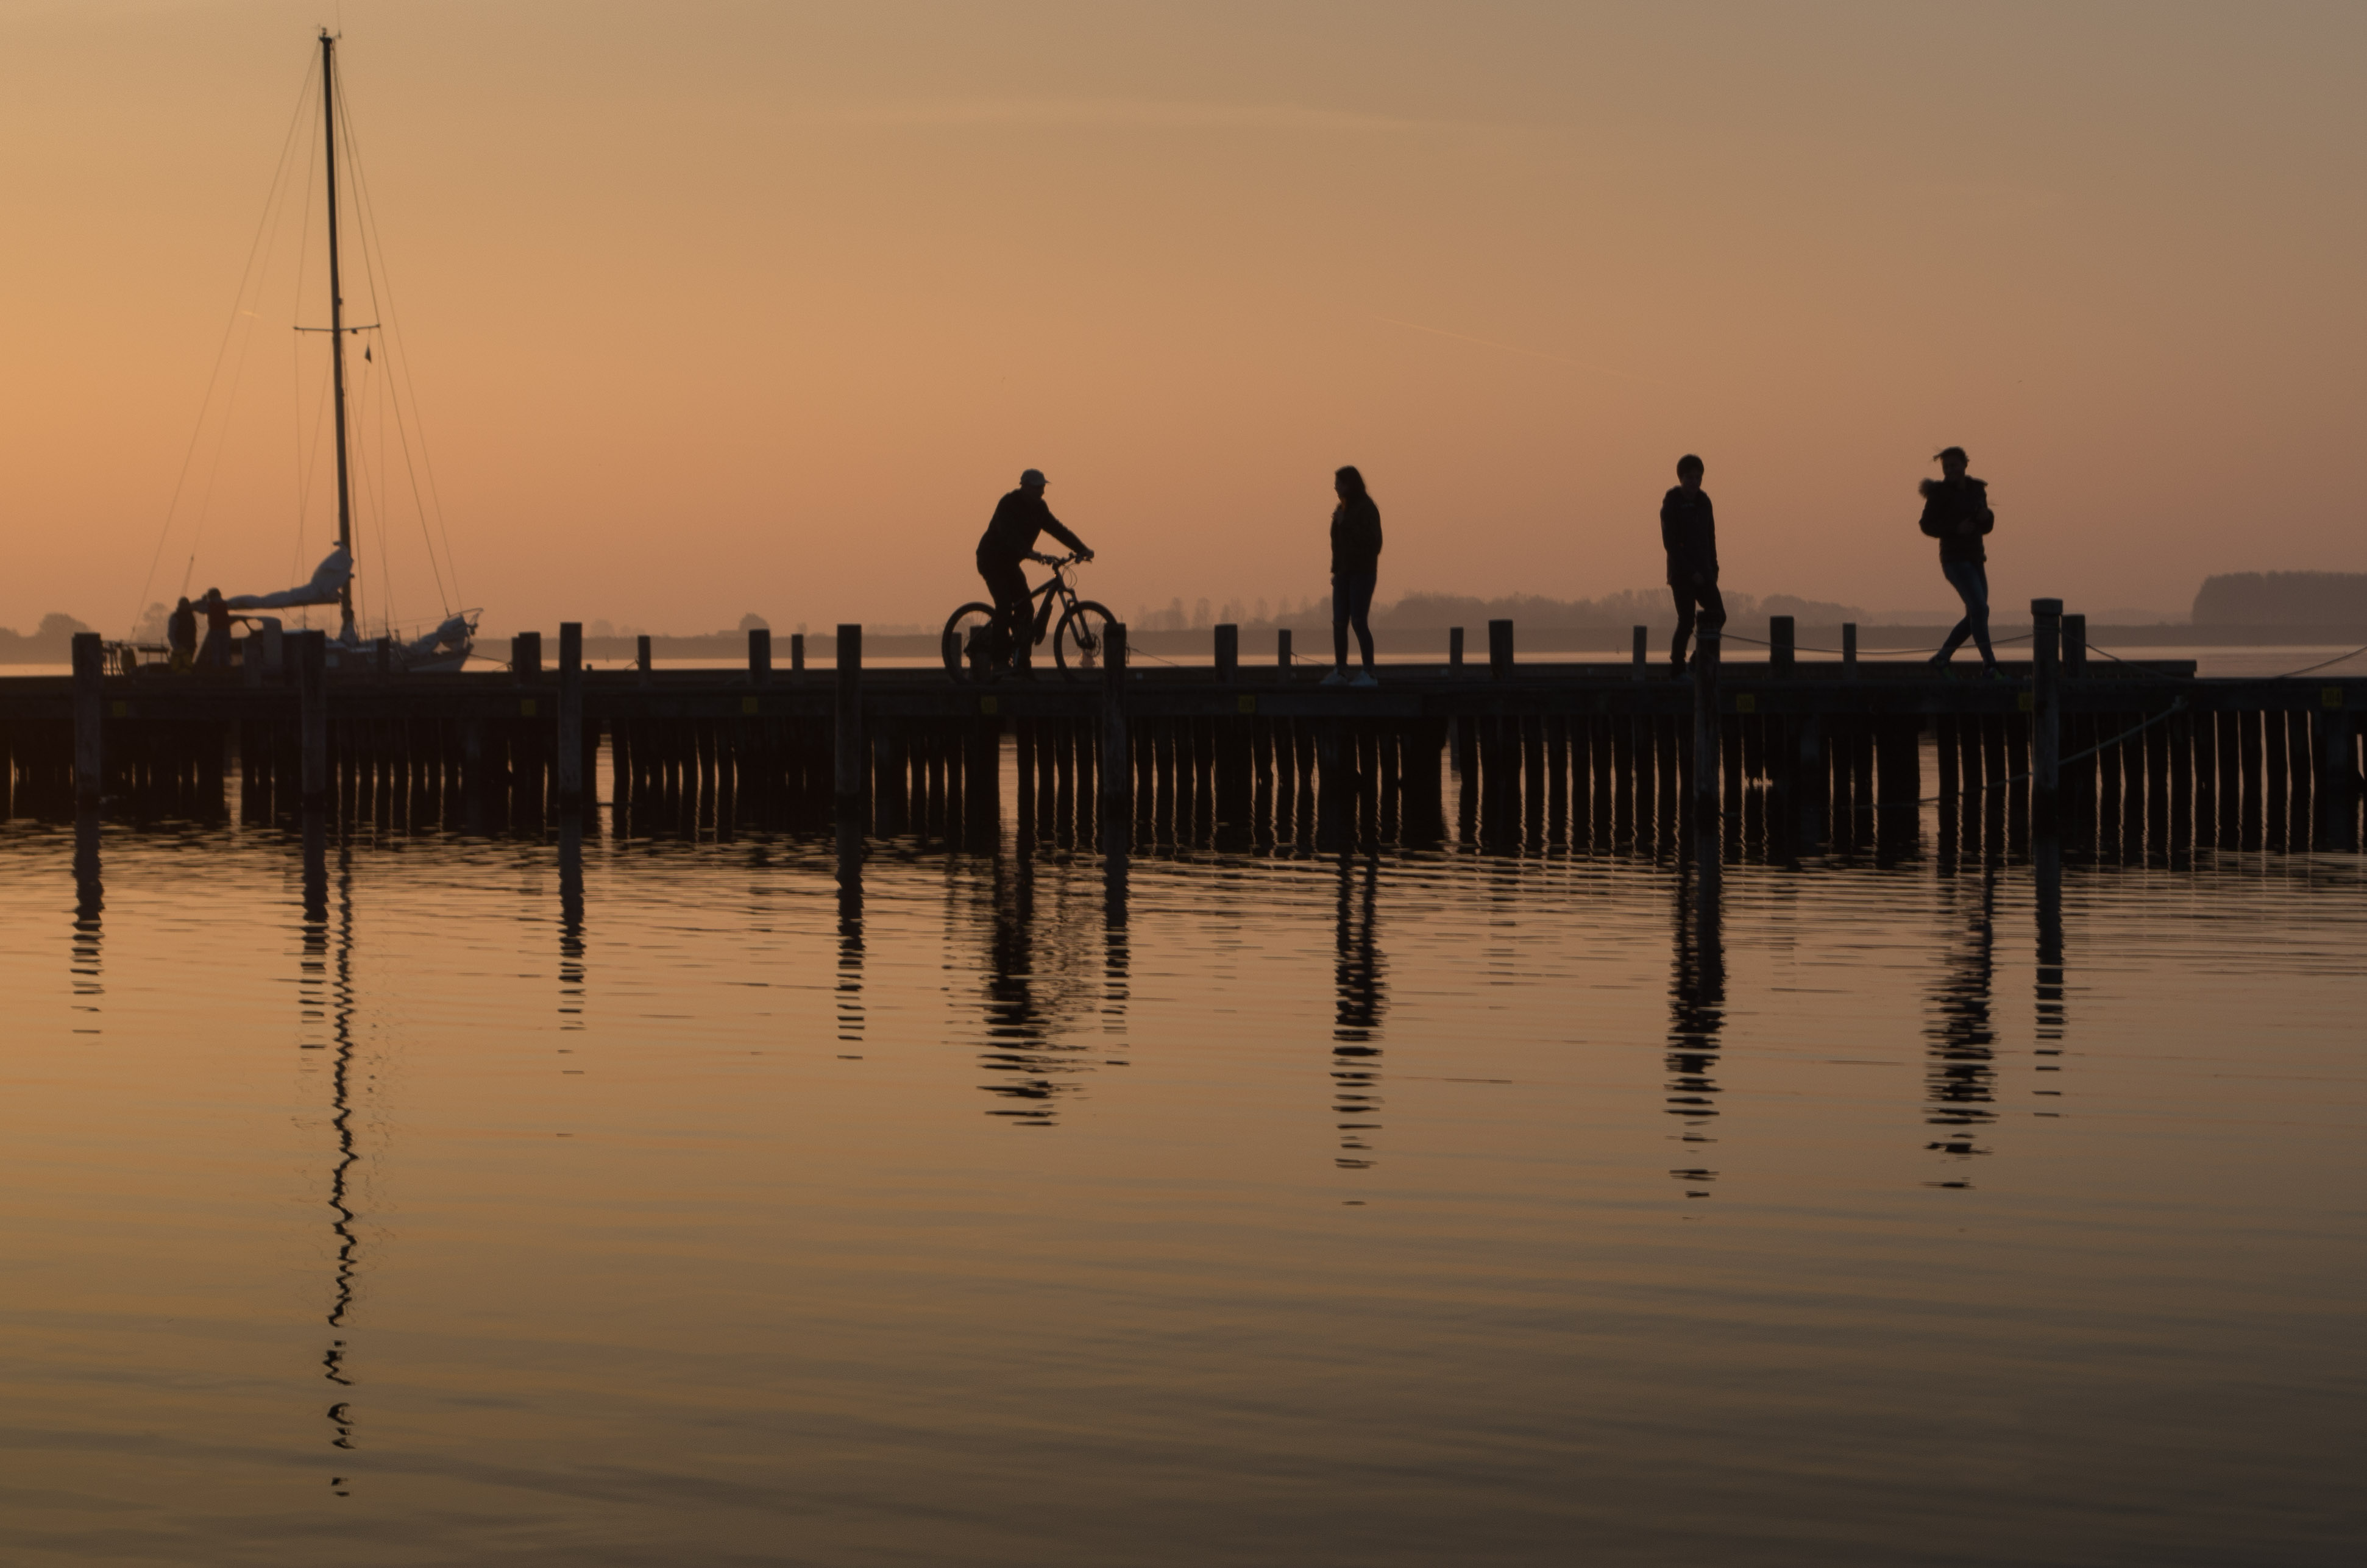 Reflections from the jetty